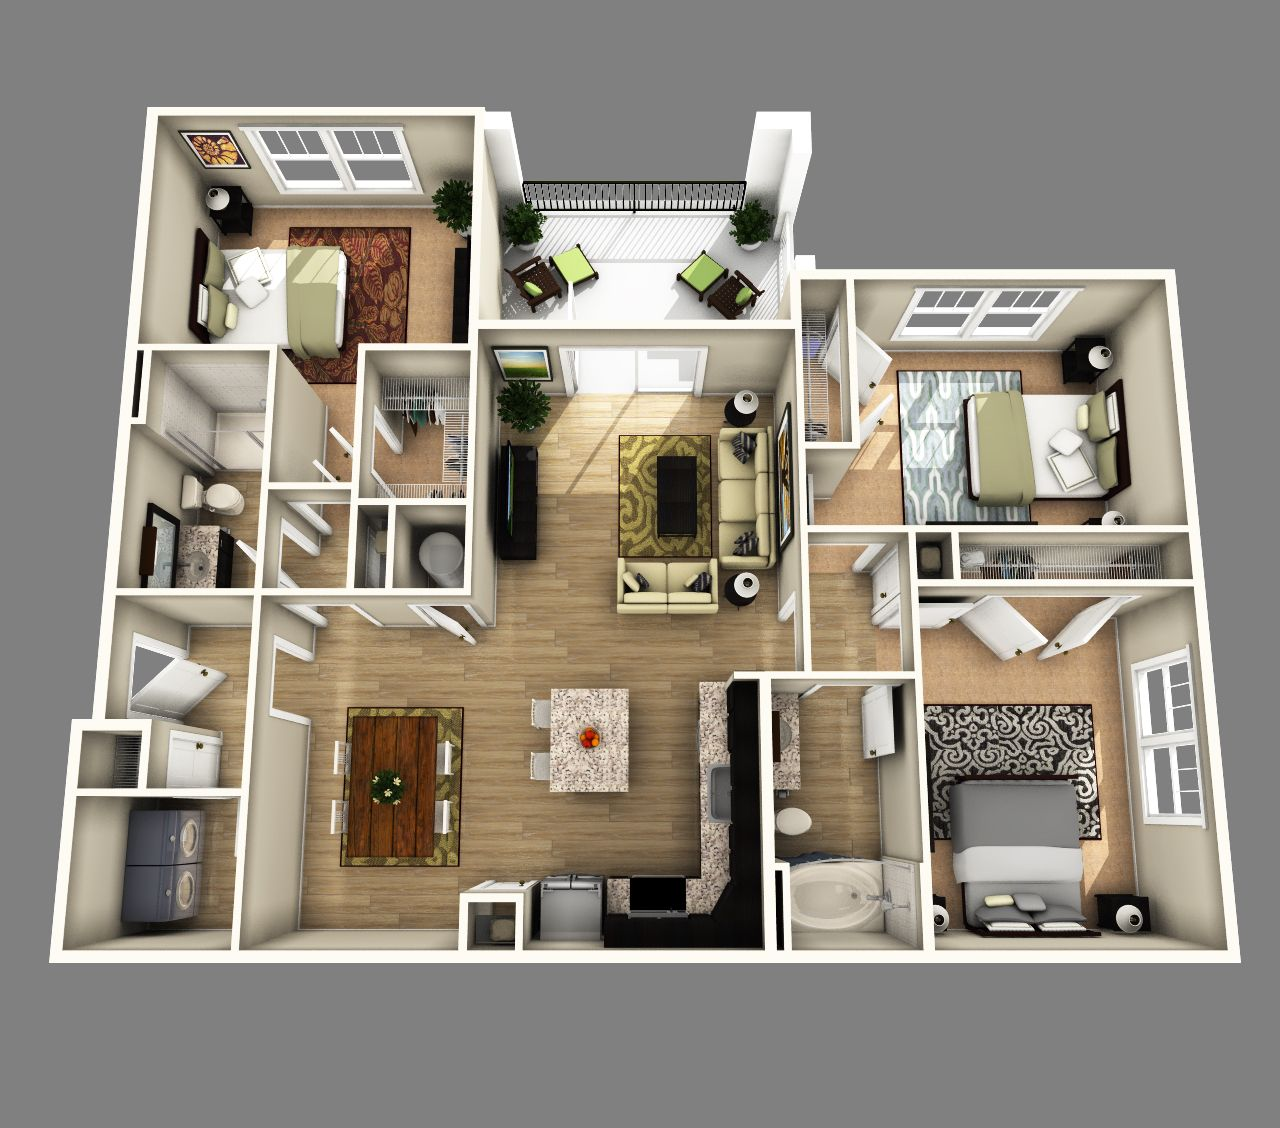 2 Bedroom Apartment Design Plans 10 awesome two bedroom apartment 3d floor plans | bedroom